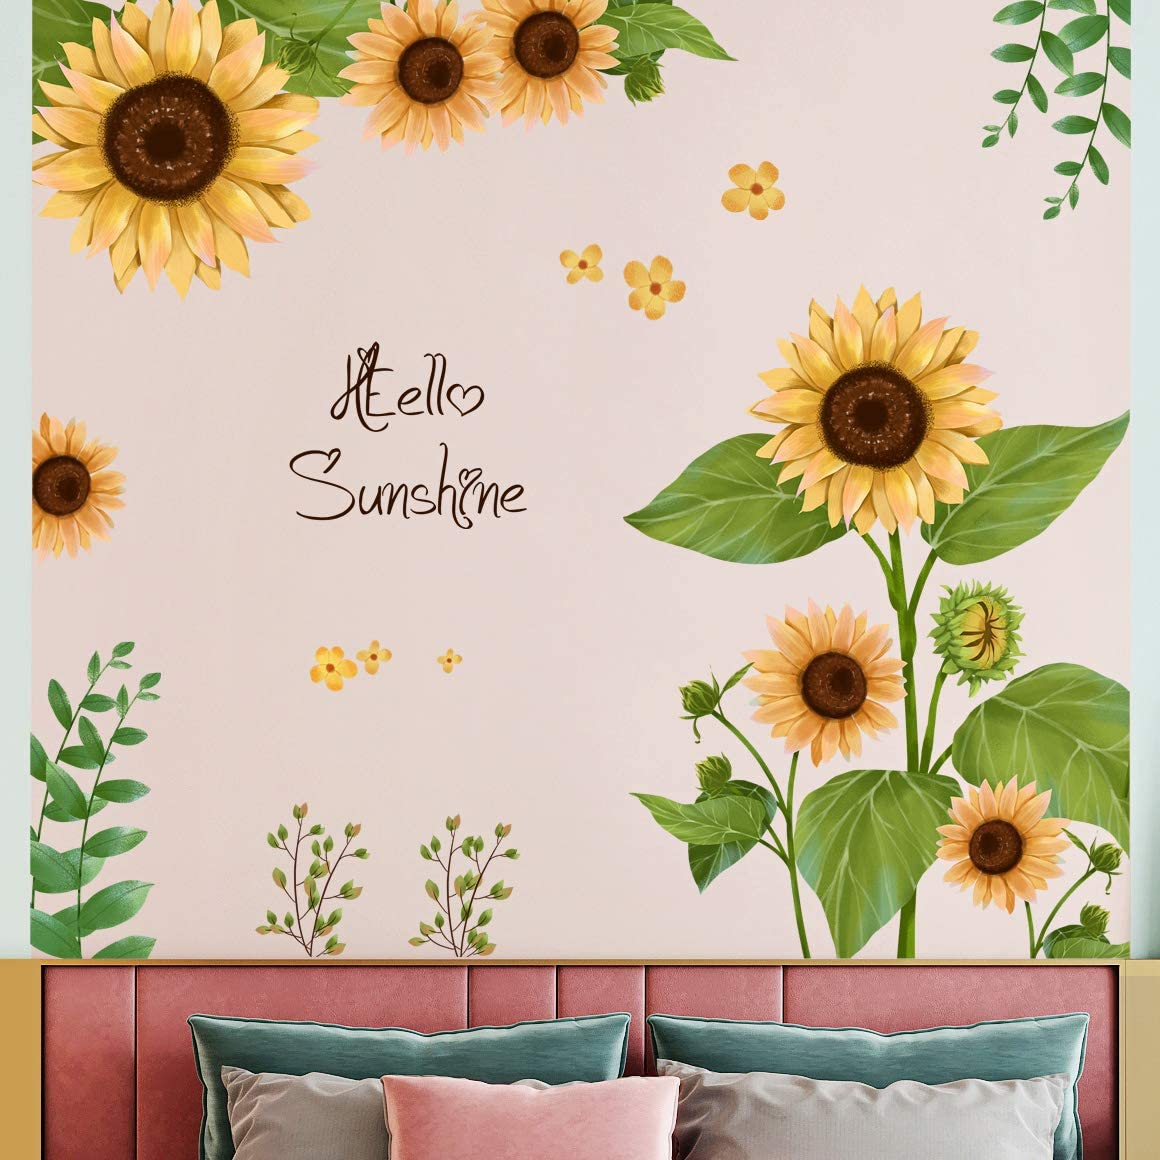 Amaonm Creative Removable Sunflower Wall Sticker DIY Green Leaves Wall Decal Flowers Wall Decor Floral Peel and Stick Art for Home Kids Bedroom Girls Boys Living Room Classroom Offices Decoration (B)